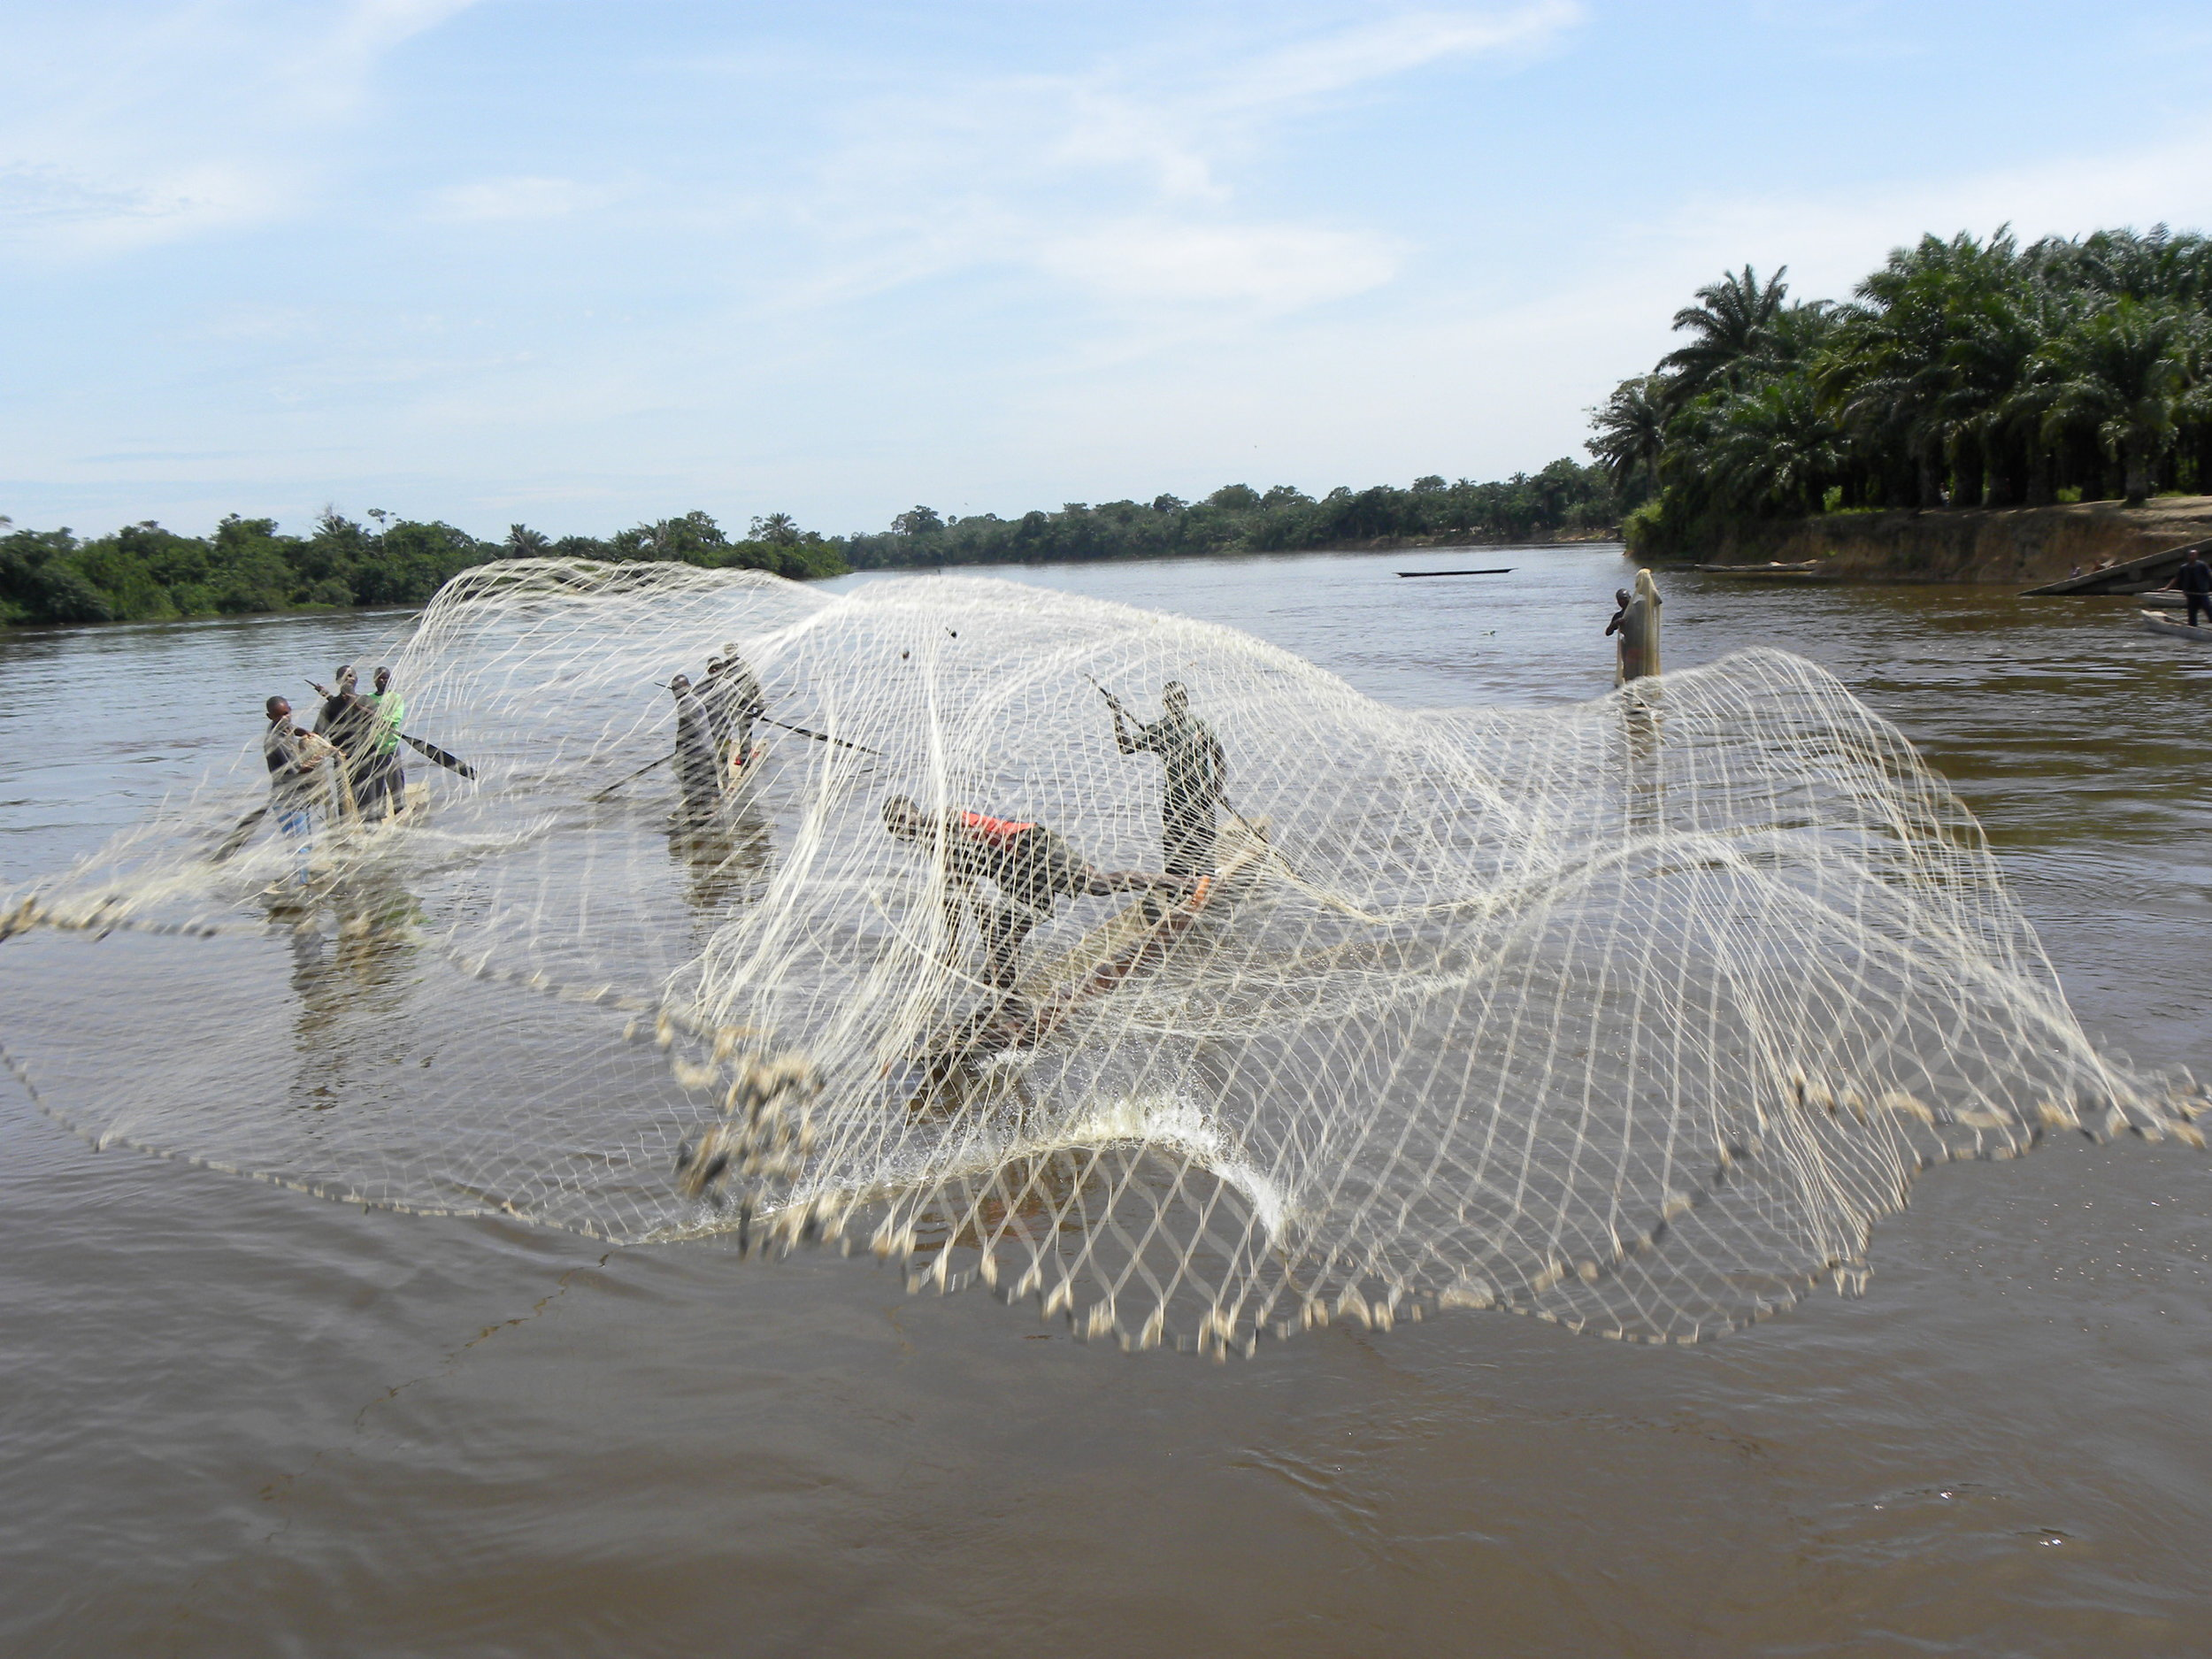 Field Highlight - Mindful of a protein scarcity typically leaving 70% of the population under-nourished, Jadora has collaborated with local foresters, community leaders, and women's groups to pilot the planting of dozens of 'butterfly trees' near villages and has installed 18 tilapia ponds in swampy-lowlands. These activities yield thousands of pounds of edible protein annually, along with other co-benefits:- Reduces vulnerabilities for women and girls traveling deep into the forest to acquire protein- Provides high-quality, reliable protein sources while pioneering a 'locally owned' platform for discussions on nutrition and food equity- Helps transition villagers from wild animals to domesticated foods; reducing illegal bush meat hunting- Creates alternate income streamsThe tilapia ponds and butterfly tree projects have become one primary focus of participating villages, and the envy of the villages not yet on board.